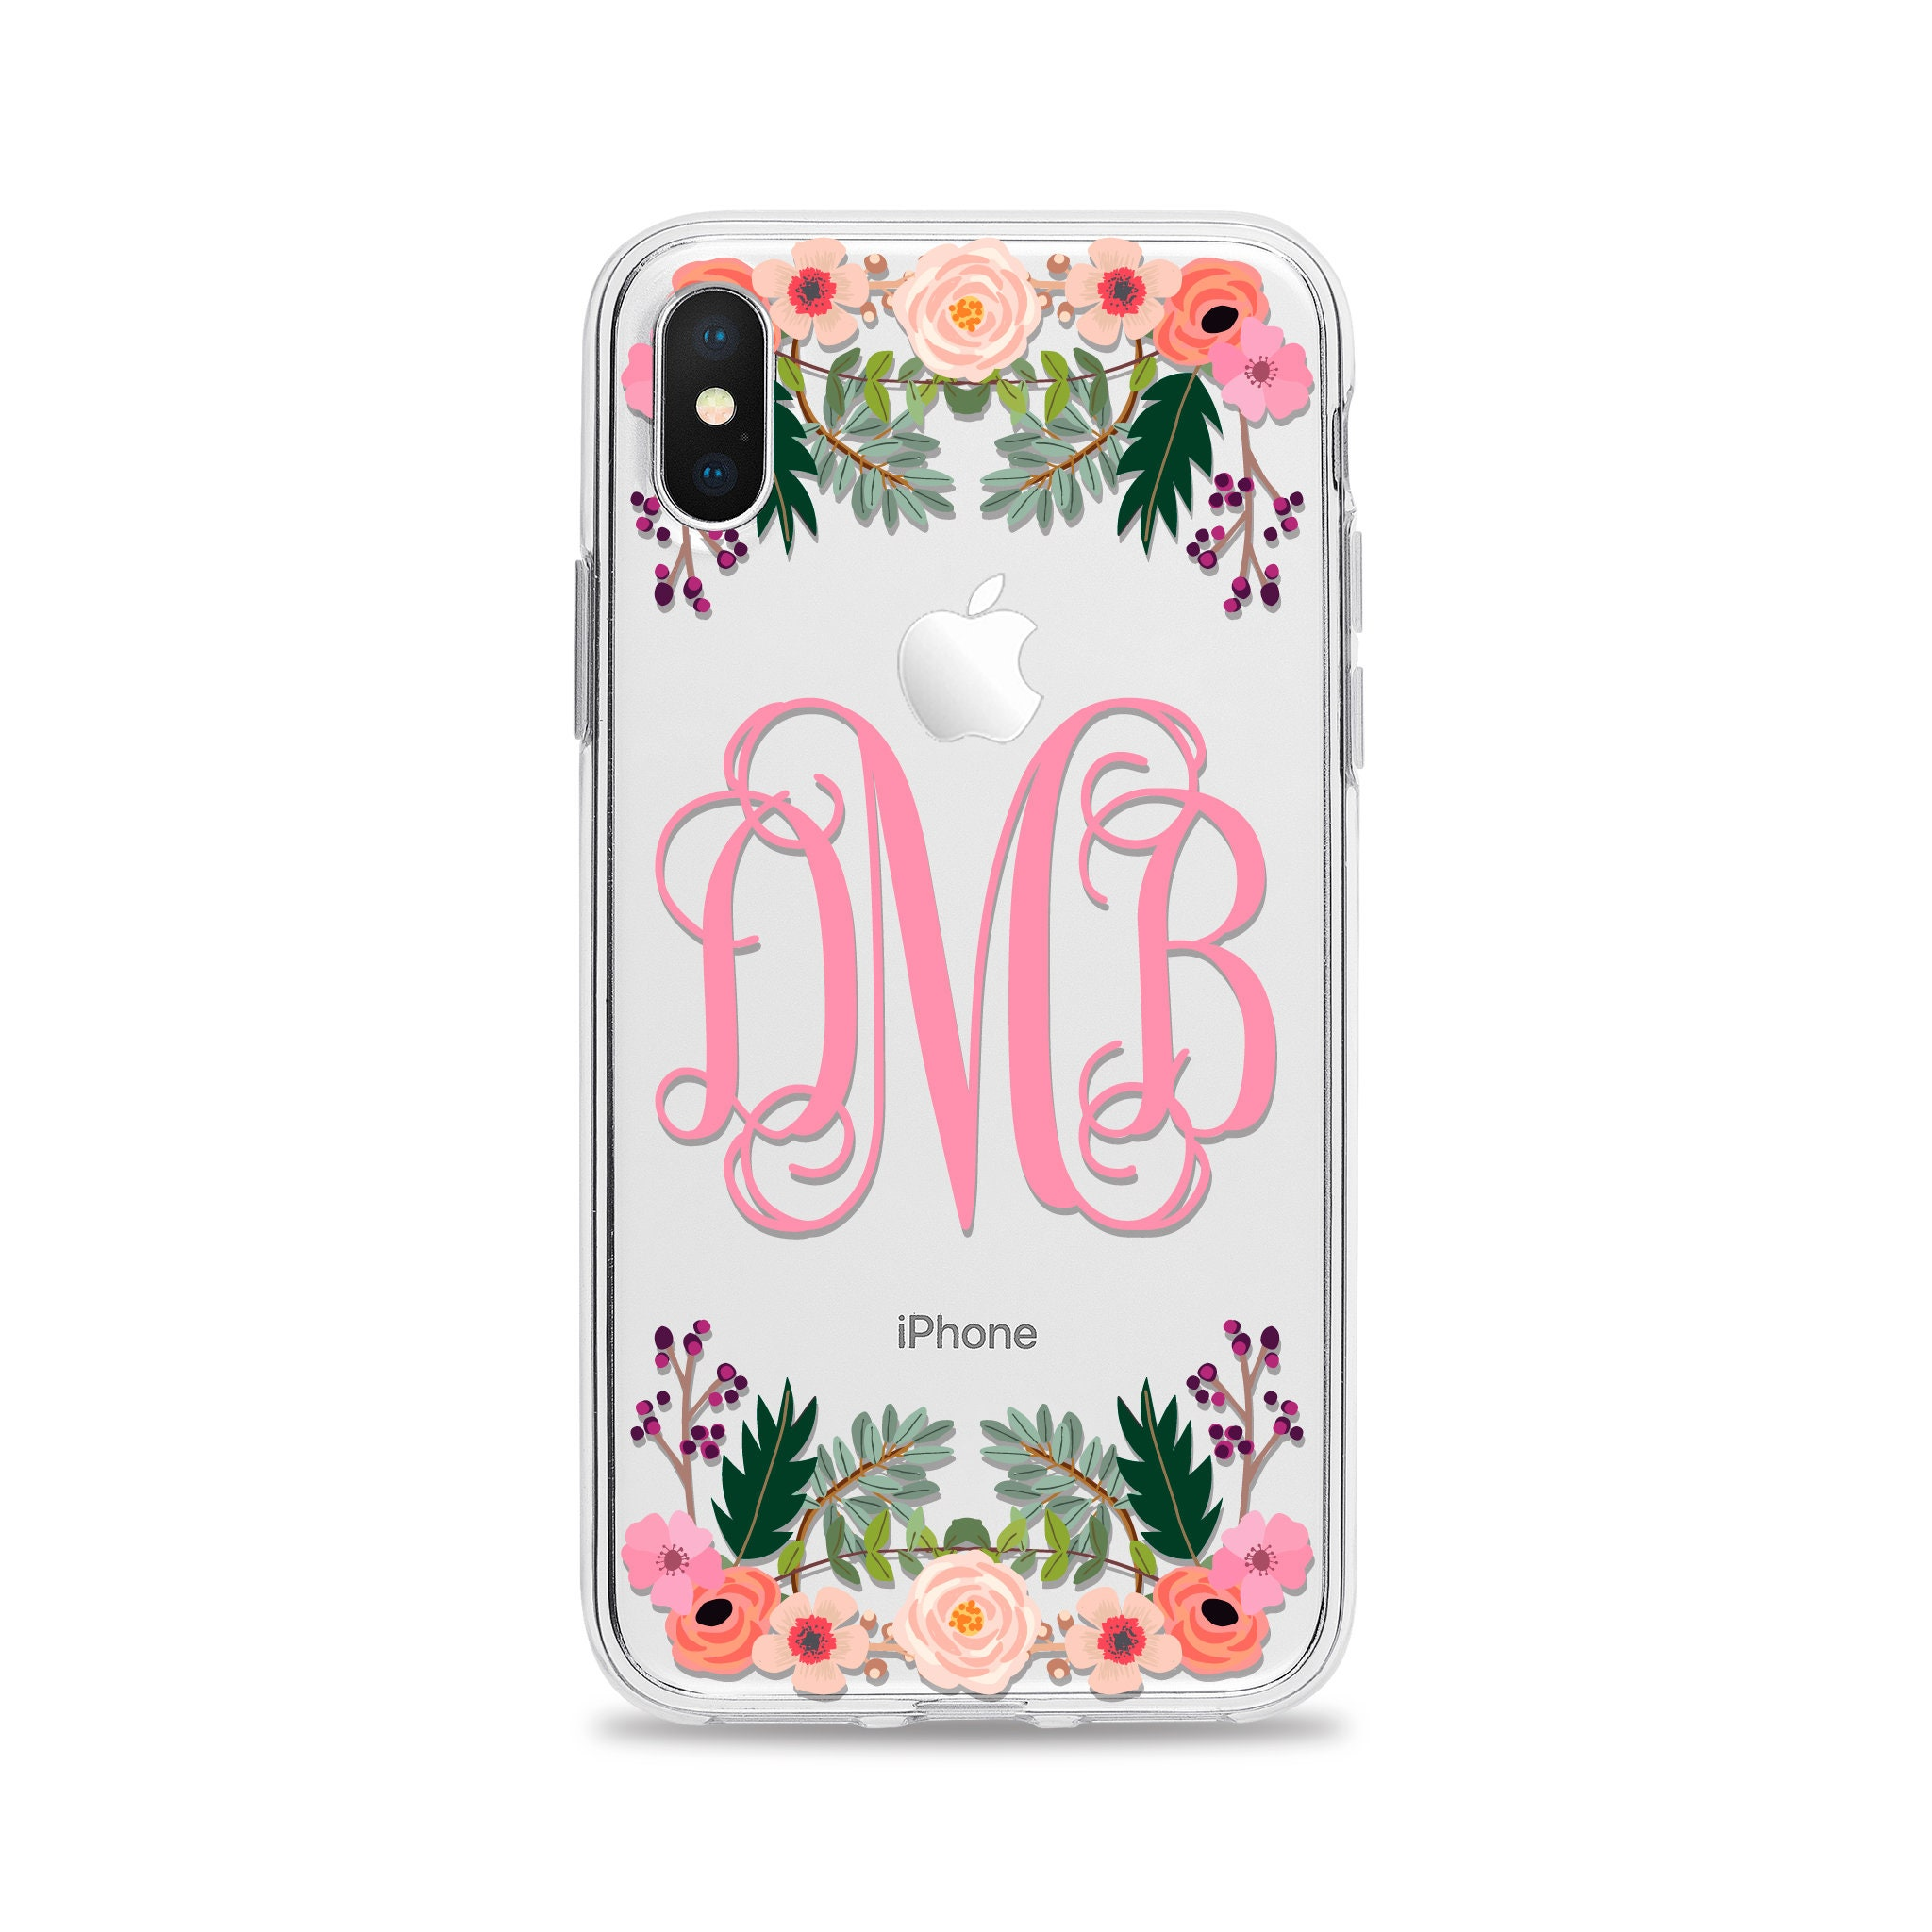 Clear Iphone Case Monogram For Xs X 8 Plus 7 6s 6 Se Samsung Galaxy S9 Samung S8 Shining Crystal S6